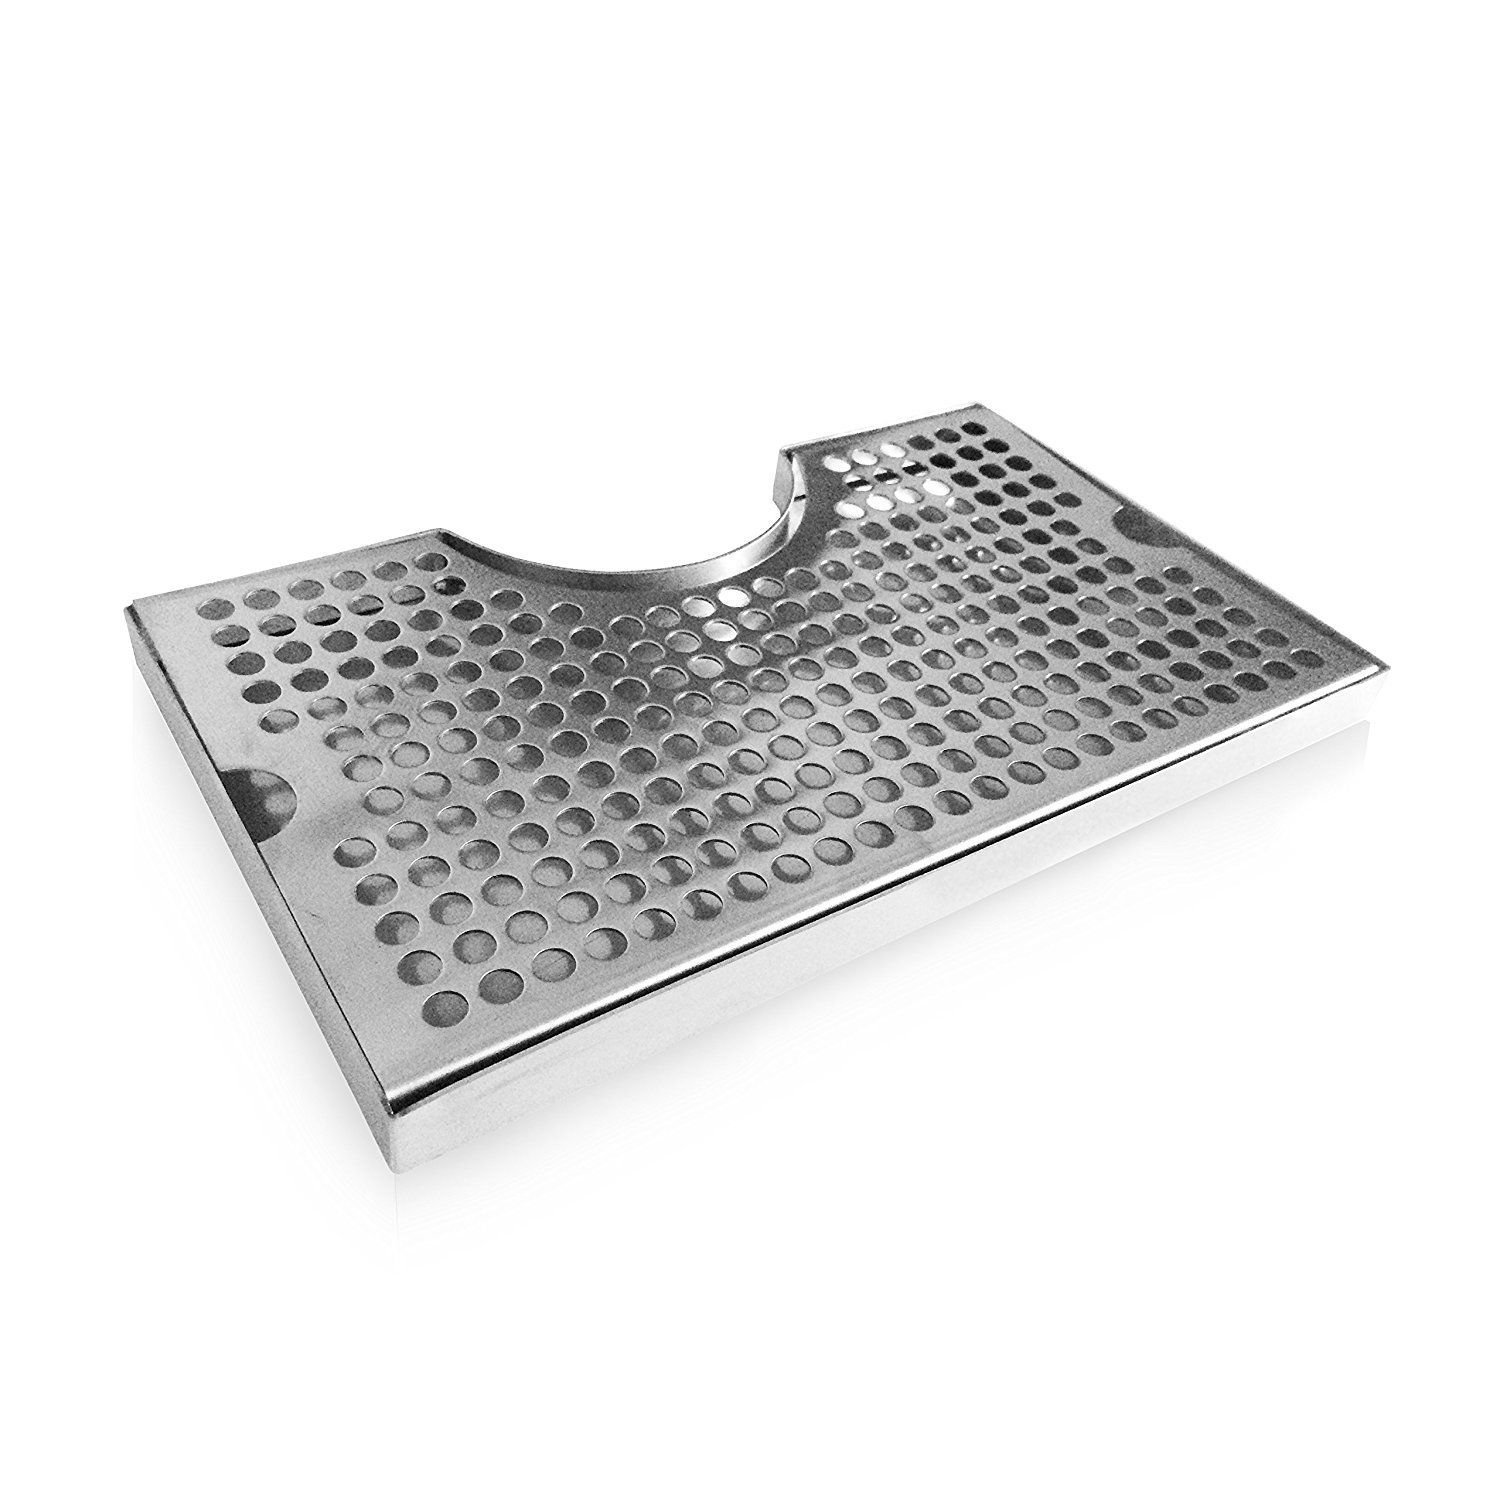 Surface Mount Kegerator Beer Drip Tray 1 X 12'' Stainless Steel Tower Cut Out No Drain